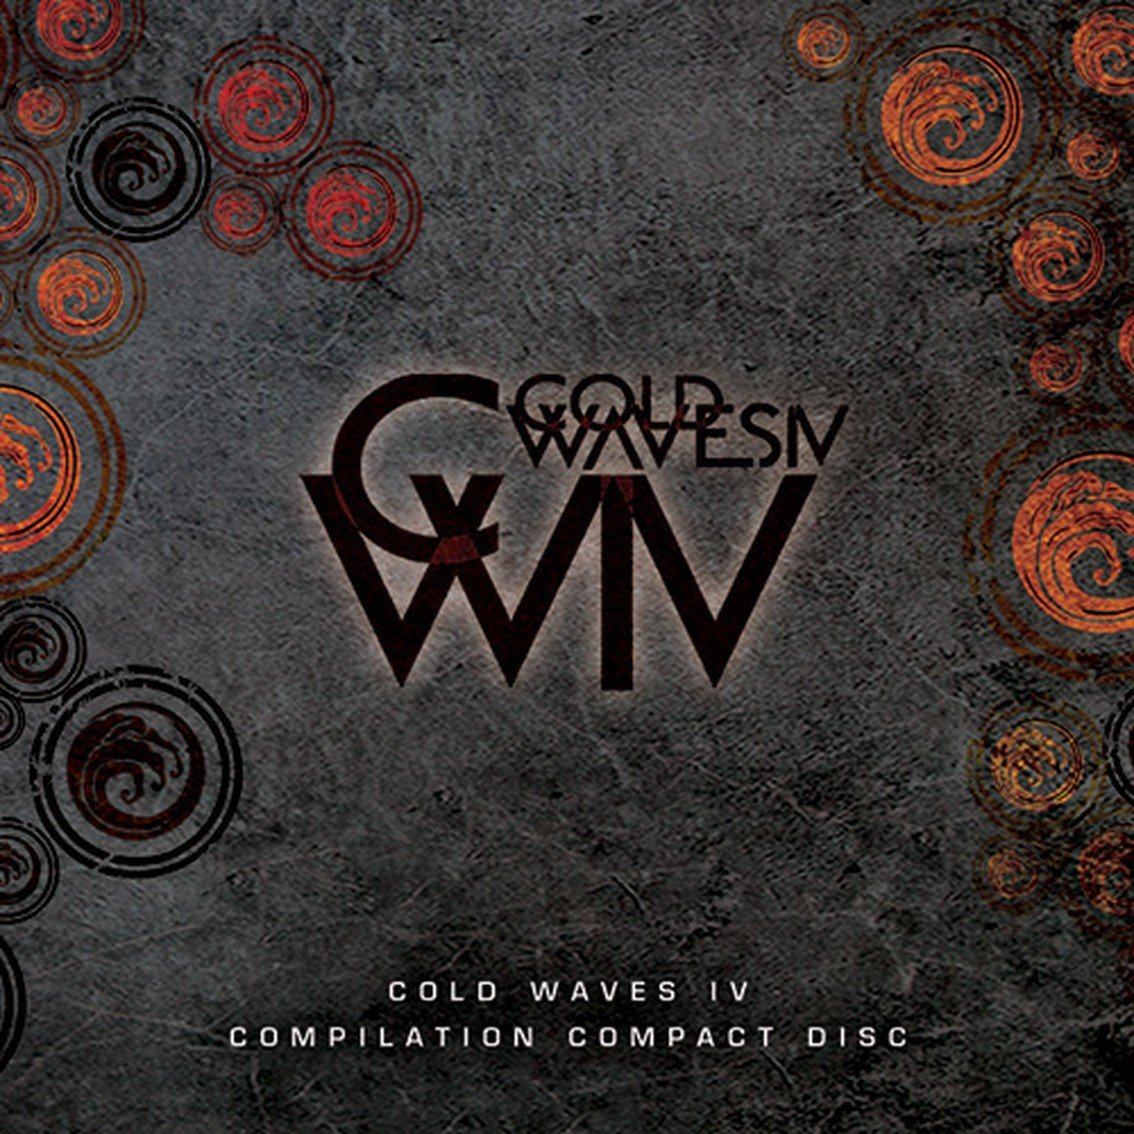 Limited run 'Cold Waves IV' compilation available feat. exclusive tracks from from Pop Will Eat Itself, Lead Into Gold, Front Line Assembly, Cocksure, High-Functioning Flesh (remixed by Covenant) and more